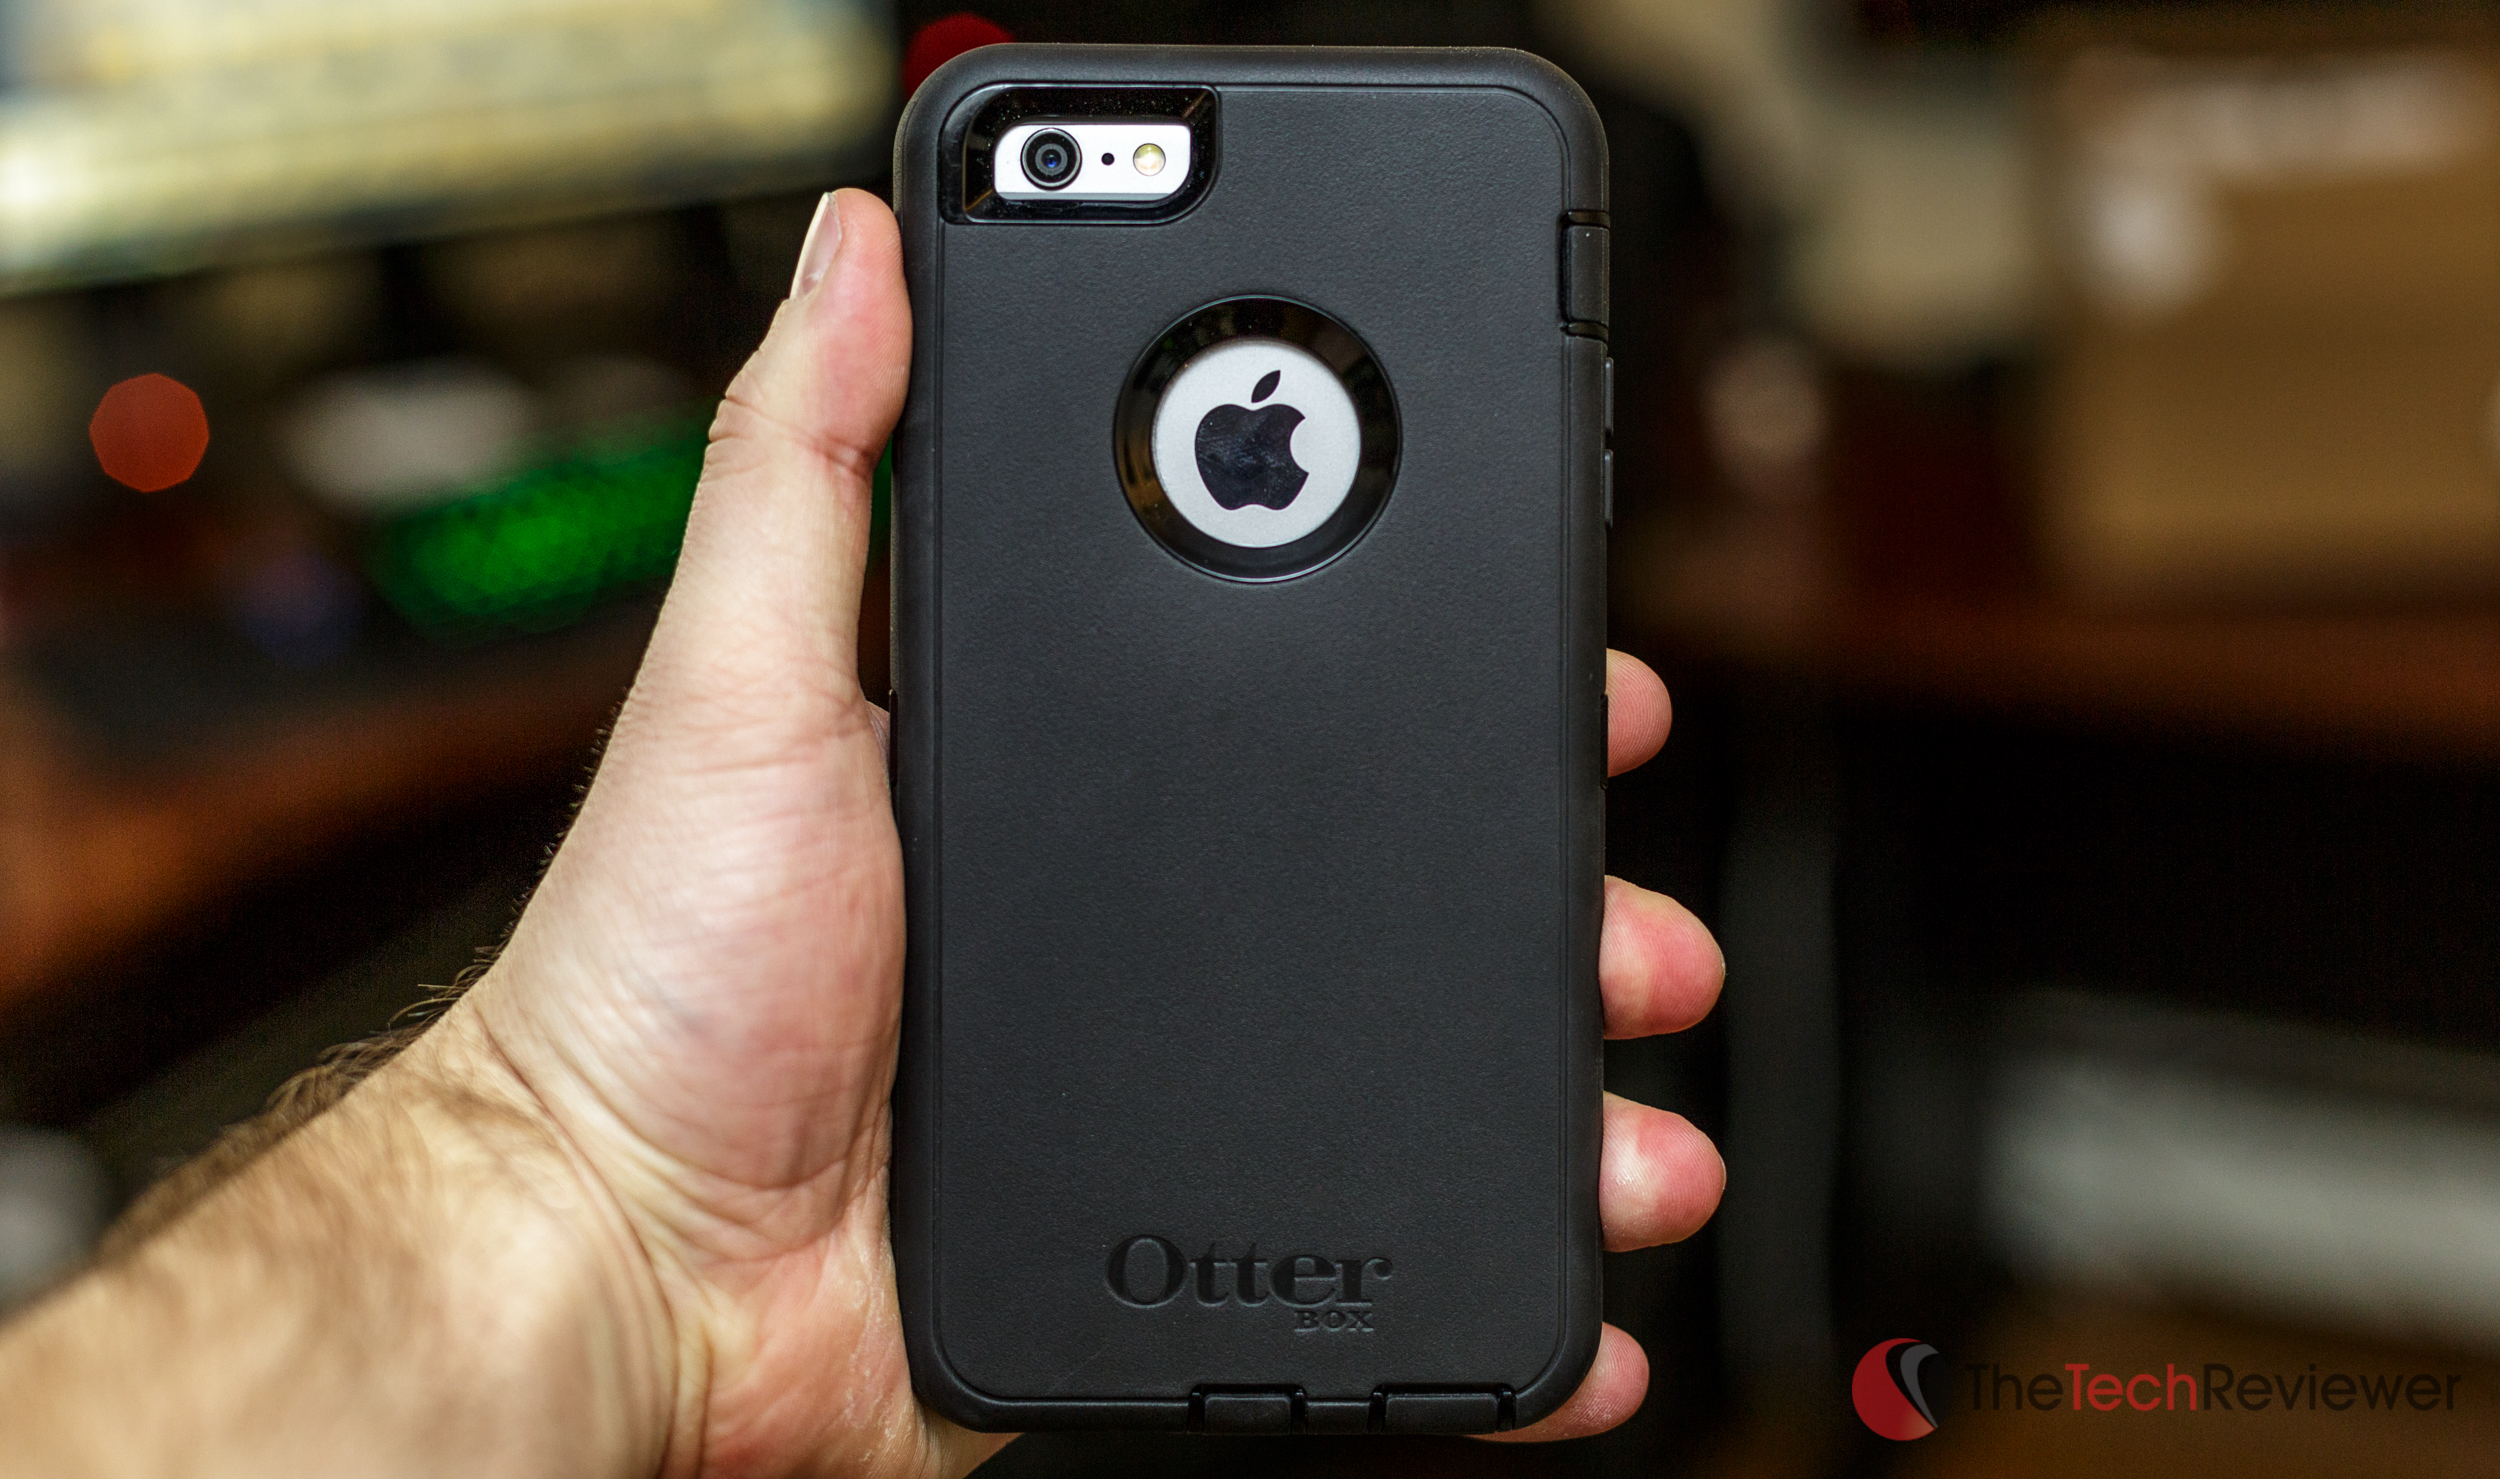 Ot otterbox iphone 6s plus covers - Another Issue In Regards To The Increased Size Is The Ability To Fit It Into Your Pants Pockets Comfortably I Have Yet To Find A Pair Of Clothing Of Which